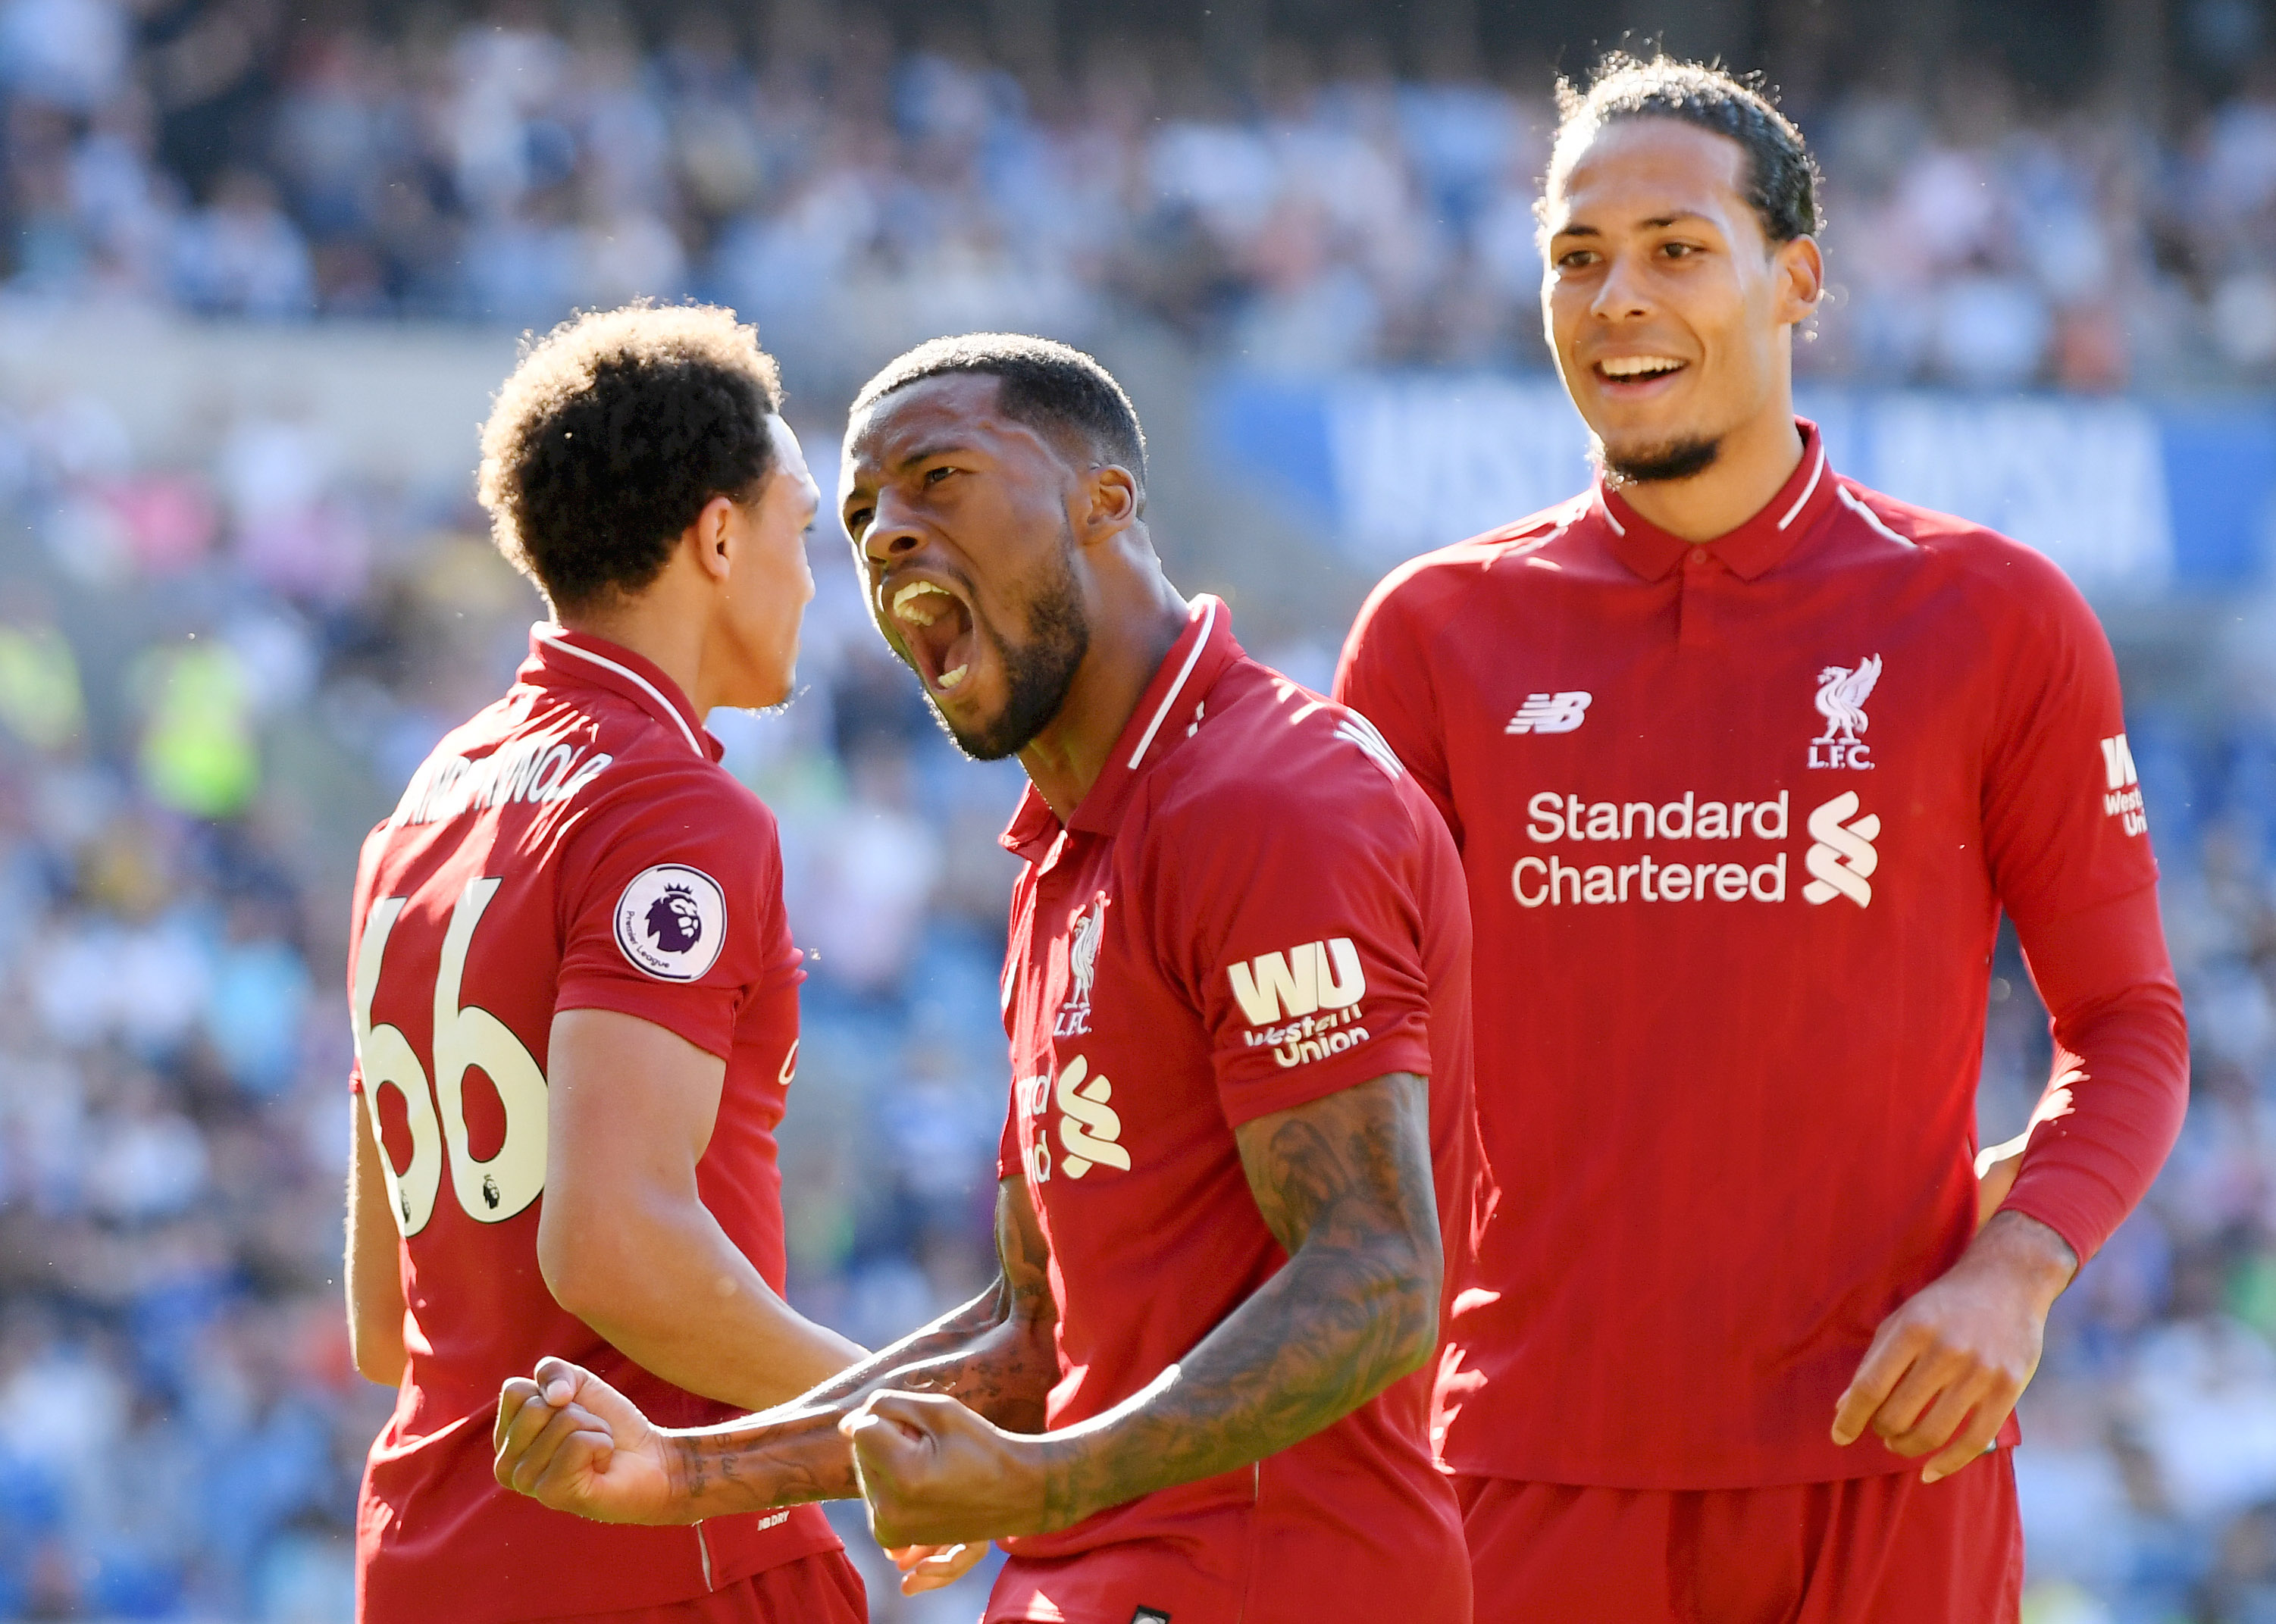 Cardiff 0, Liverpool 2: Man of the Match